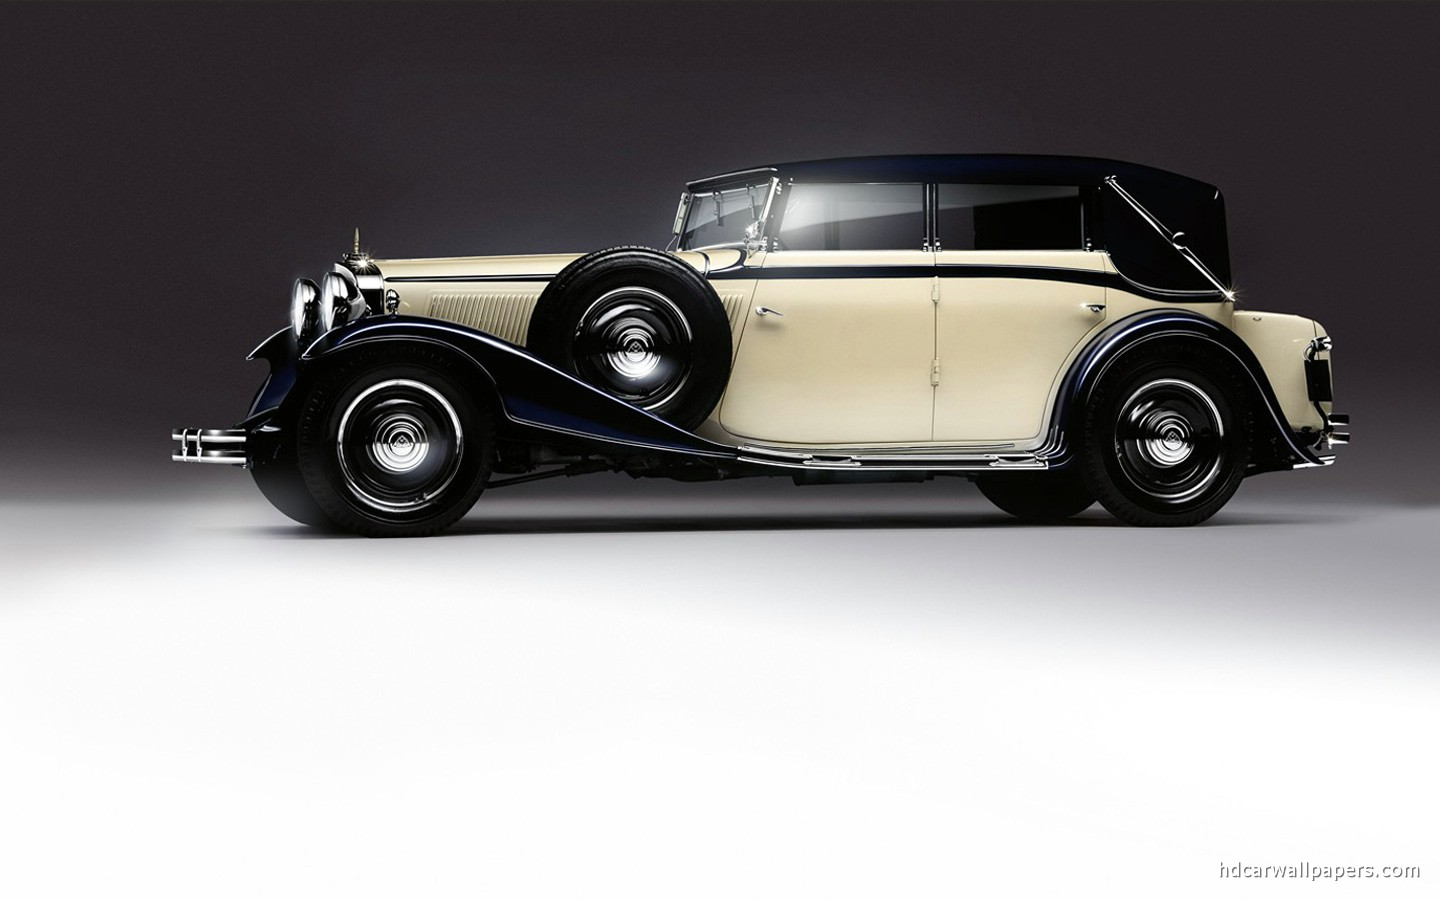 This is also Classic Car Wallpaper This car has white and black 1440x900